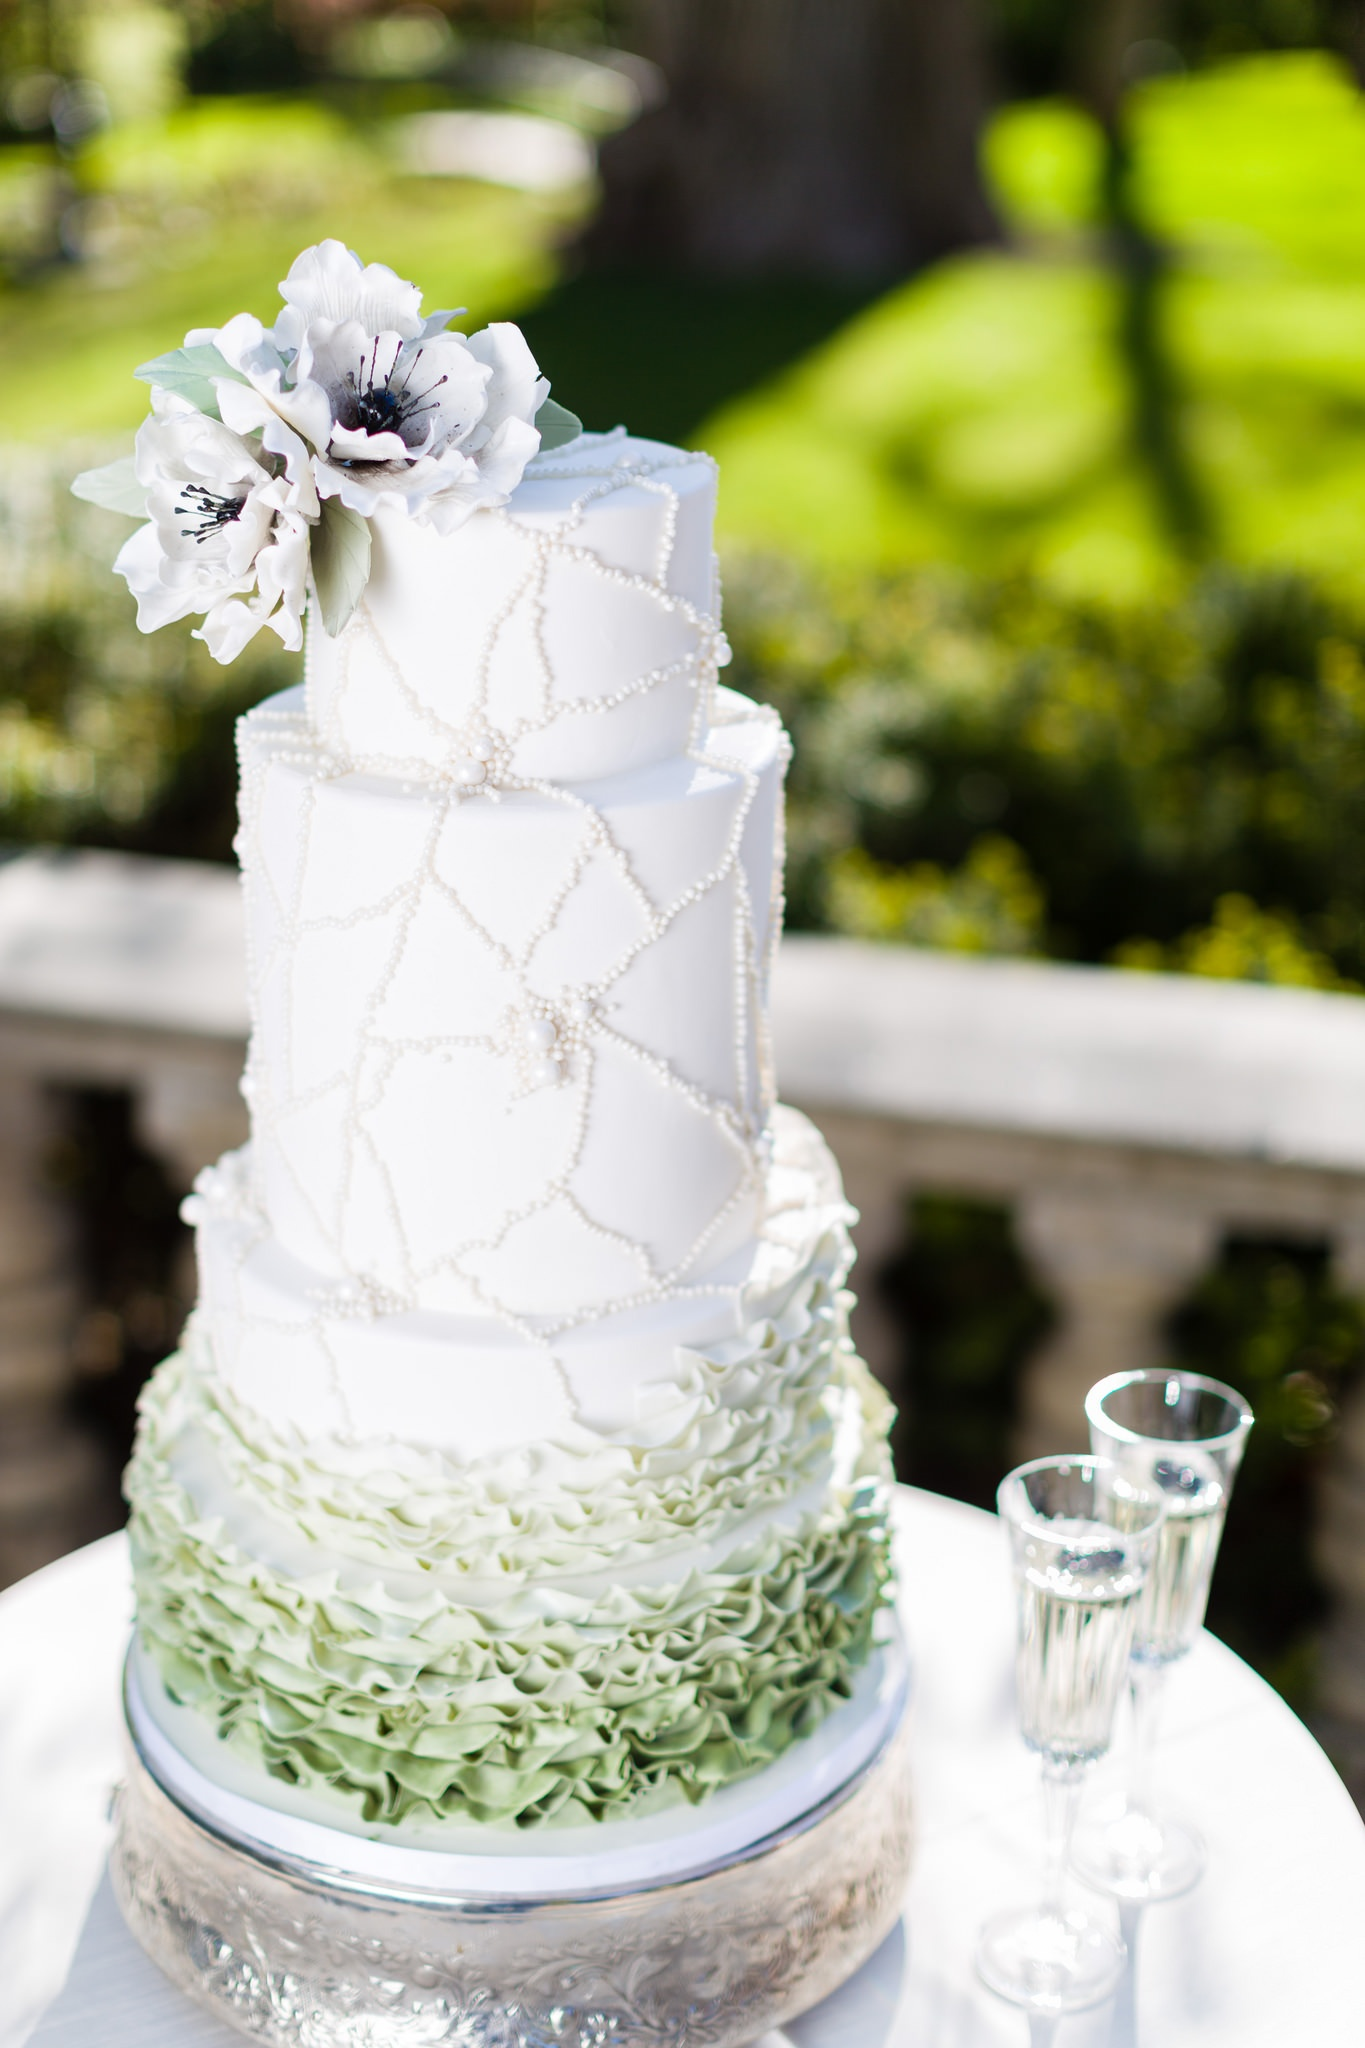 Welcome our New In-House Wedding Cake Designer: Kristen Cold